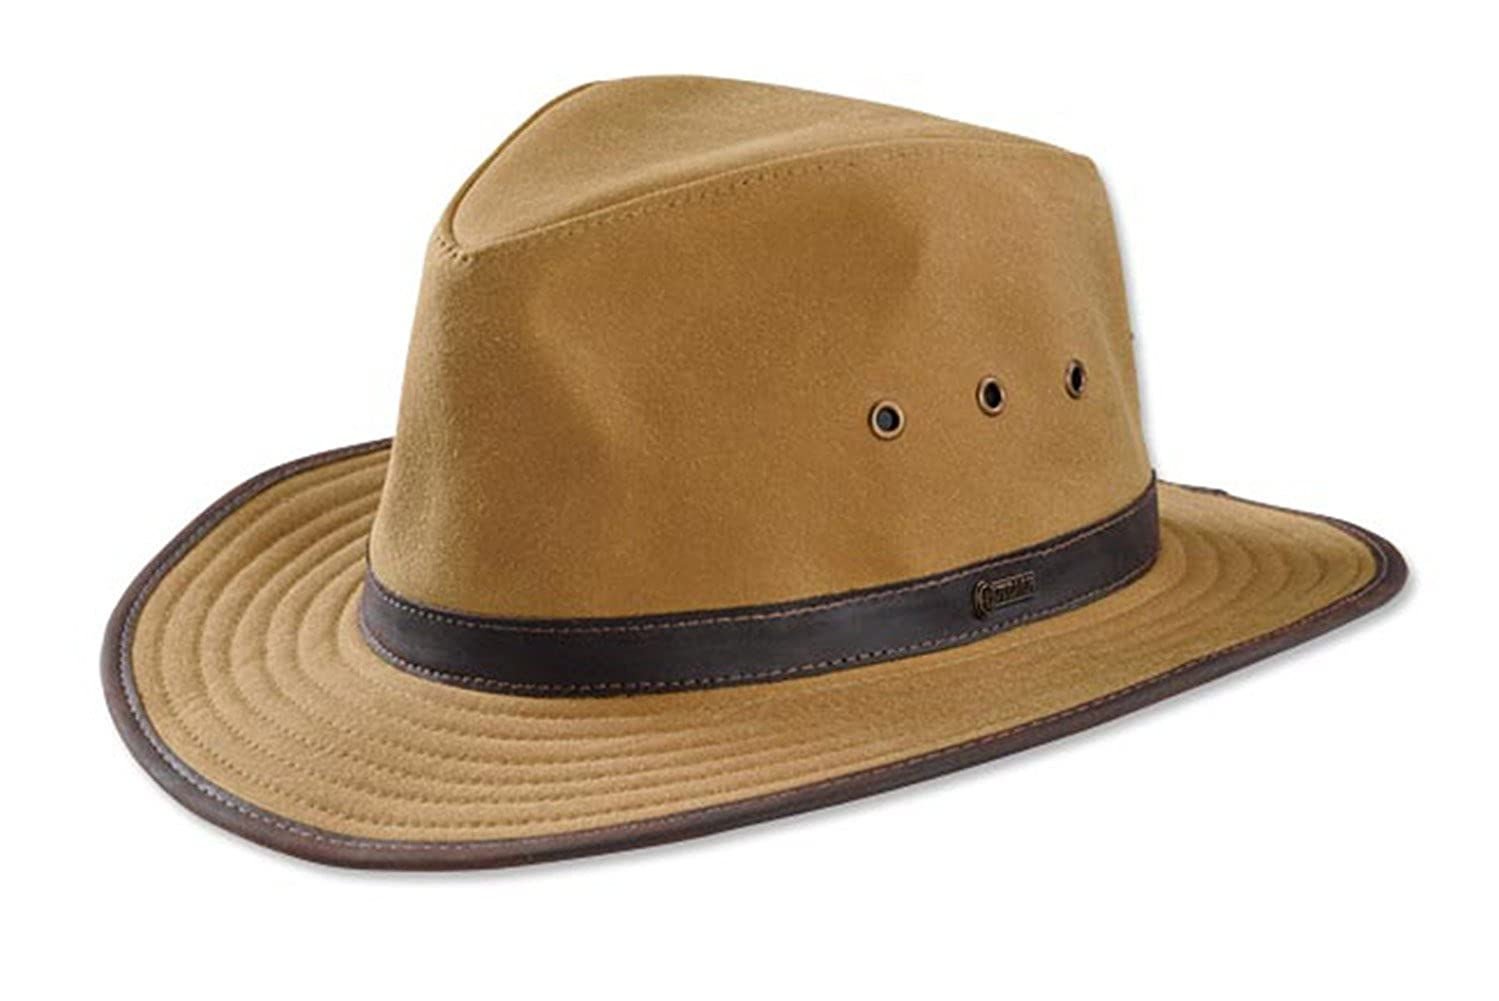 Orvis oilcloth outback hat at amazon mens clothing store safari hat orvis  jpg 1499x1001 Safari hat a4d10287ecc0